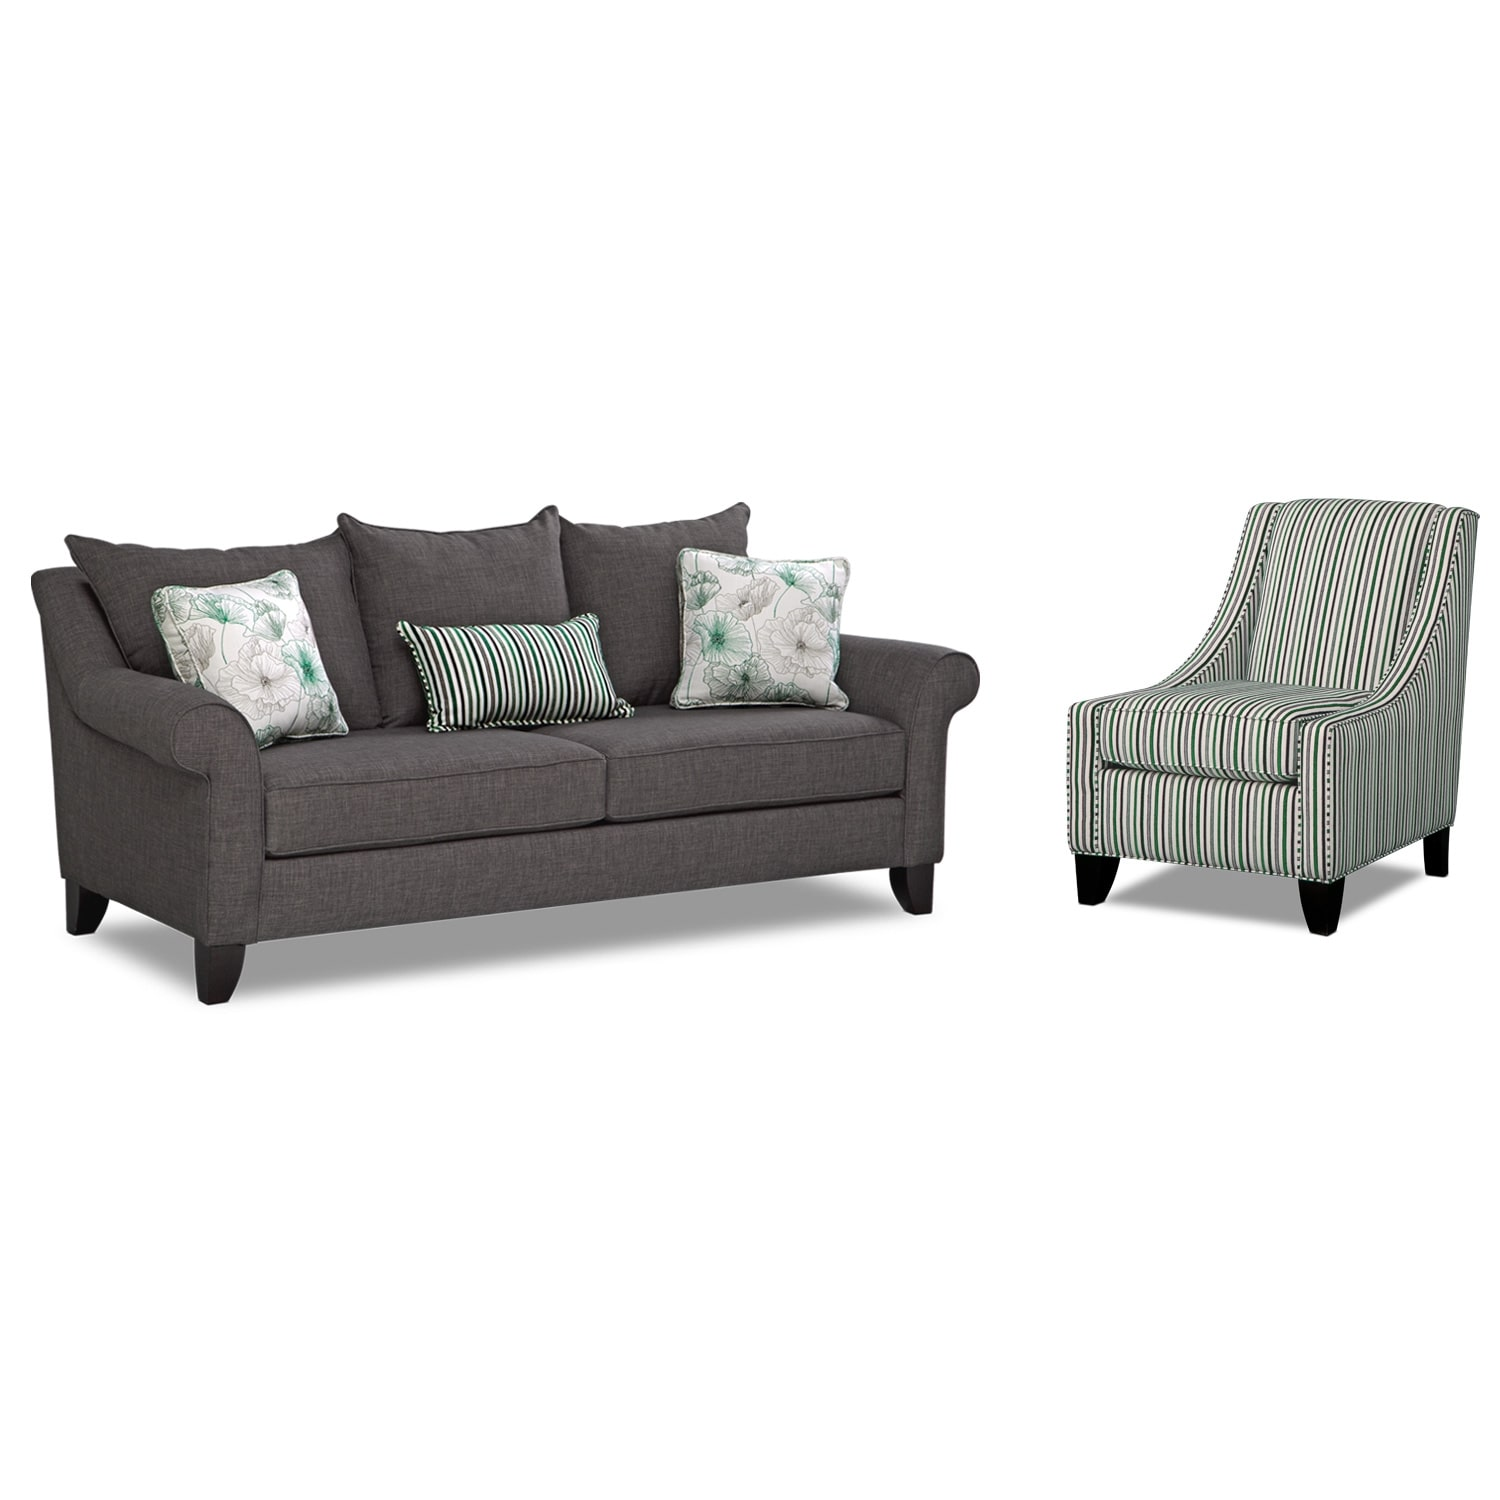 Living Room Furniture - Jasmine 2 Pc. Sleeper Living Room with Accent Chair and Memory Foam Mattress - Charcoal